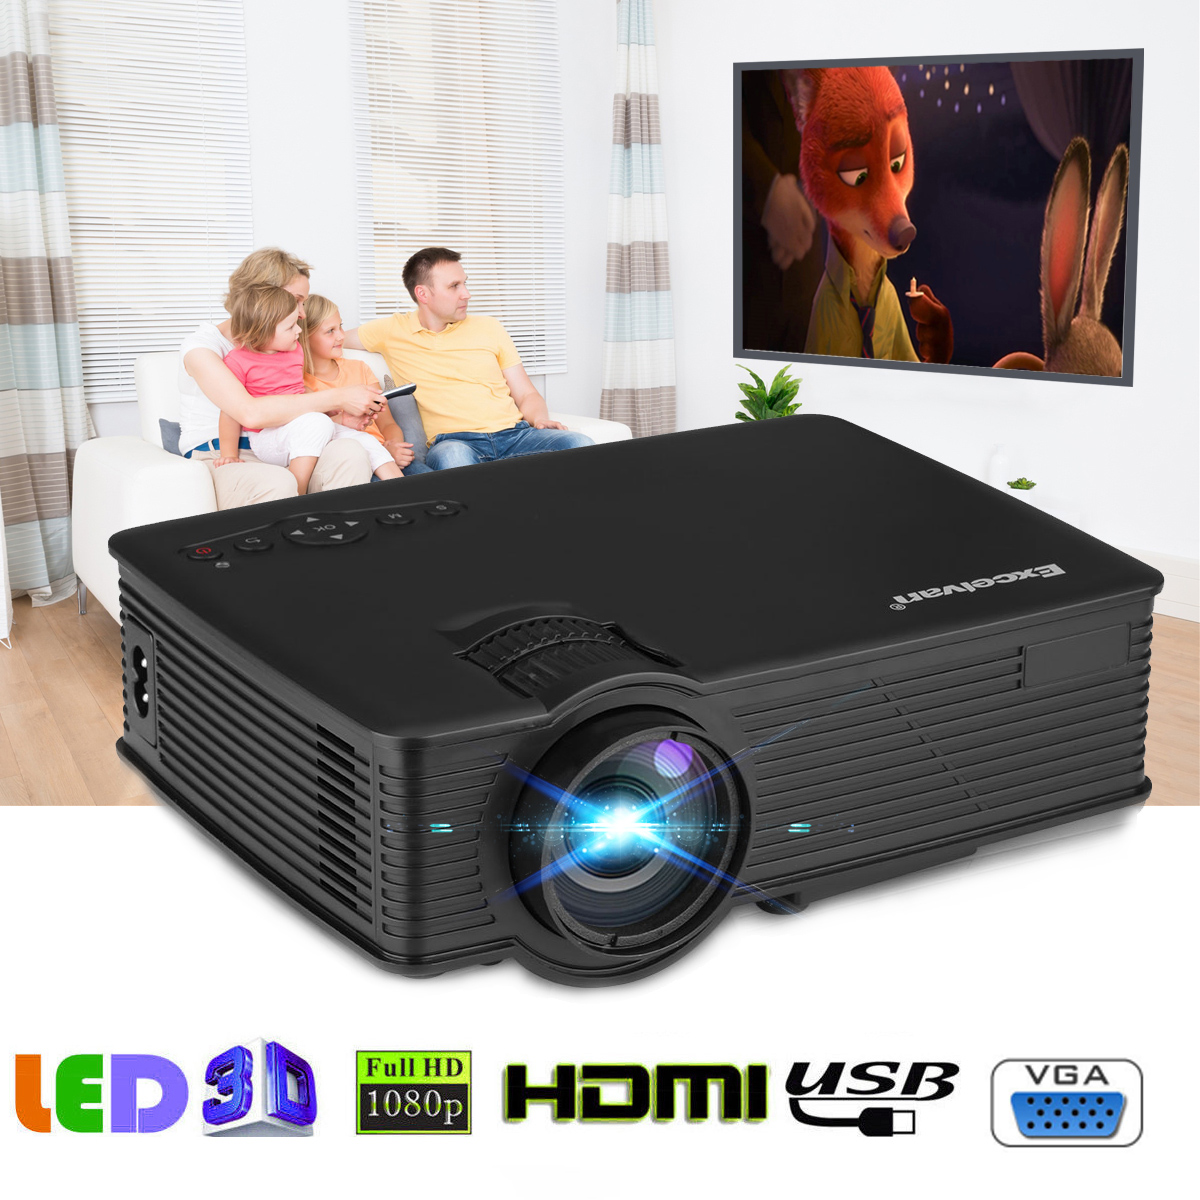 Excelvan Mini LED Projector, 800x480 Pixels 1200 Lumens Home Cinema Theater HDMI/USB/USB(5V)/SD/AV/VGA/3.5mm